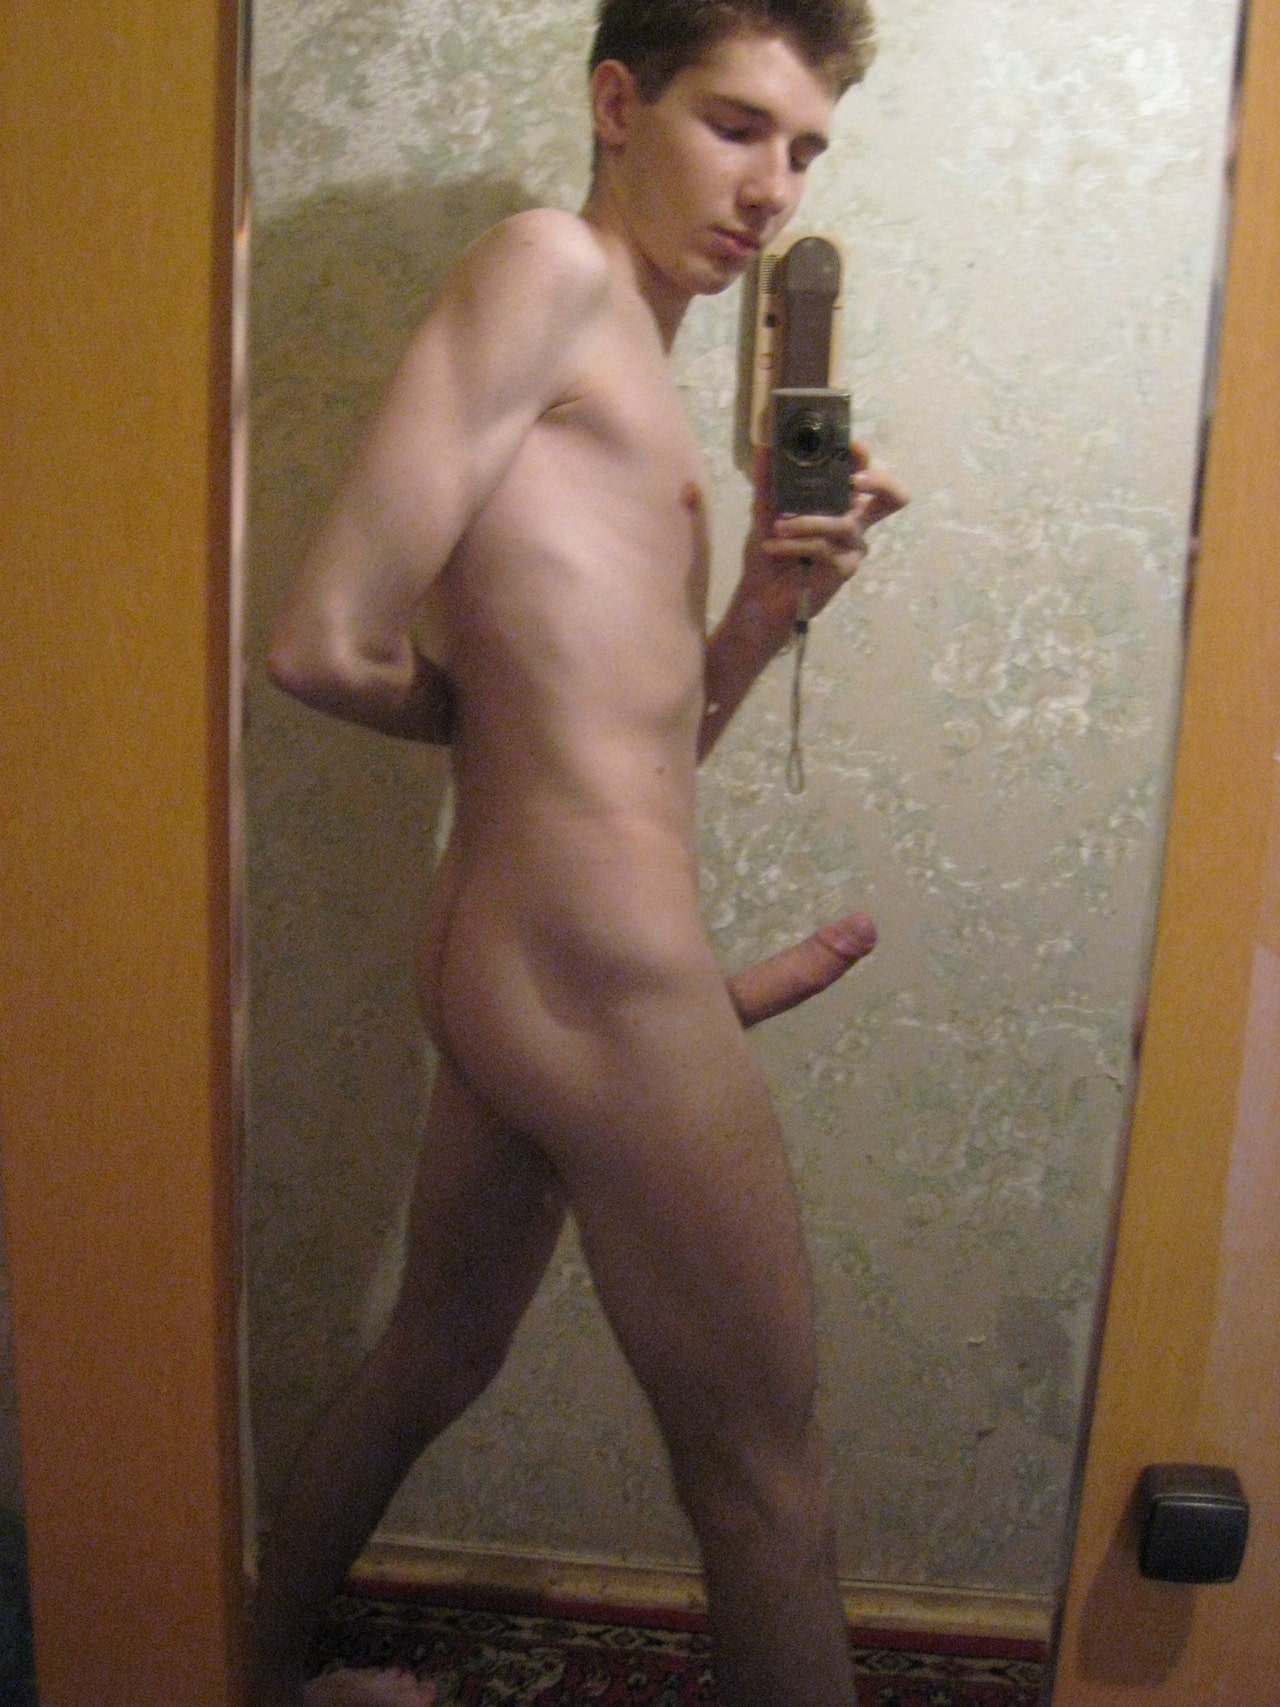 Cute Teen Boy With A Nice Big Boner